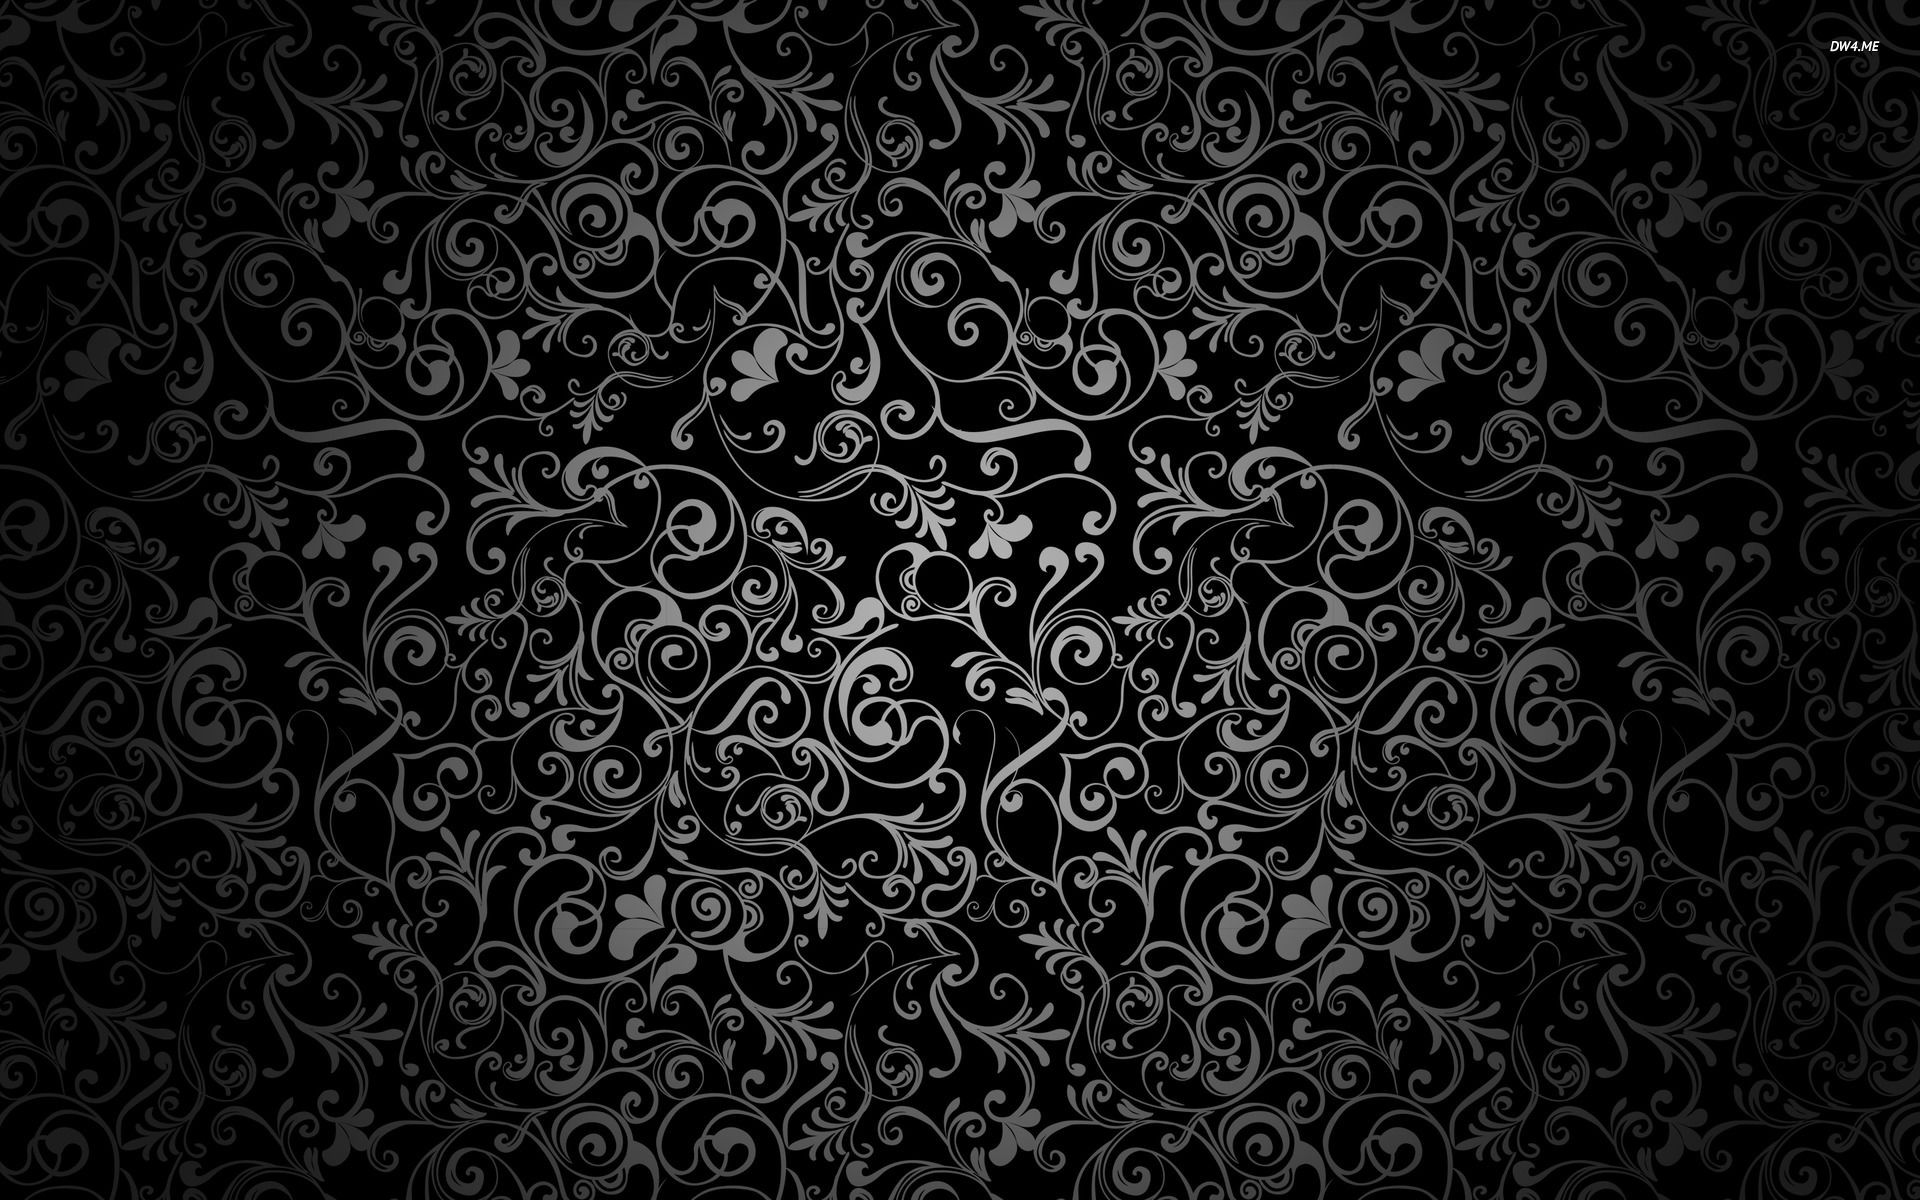 Black Pattern Wallpapers - Top Free Black Pattern Backgrounds